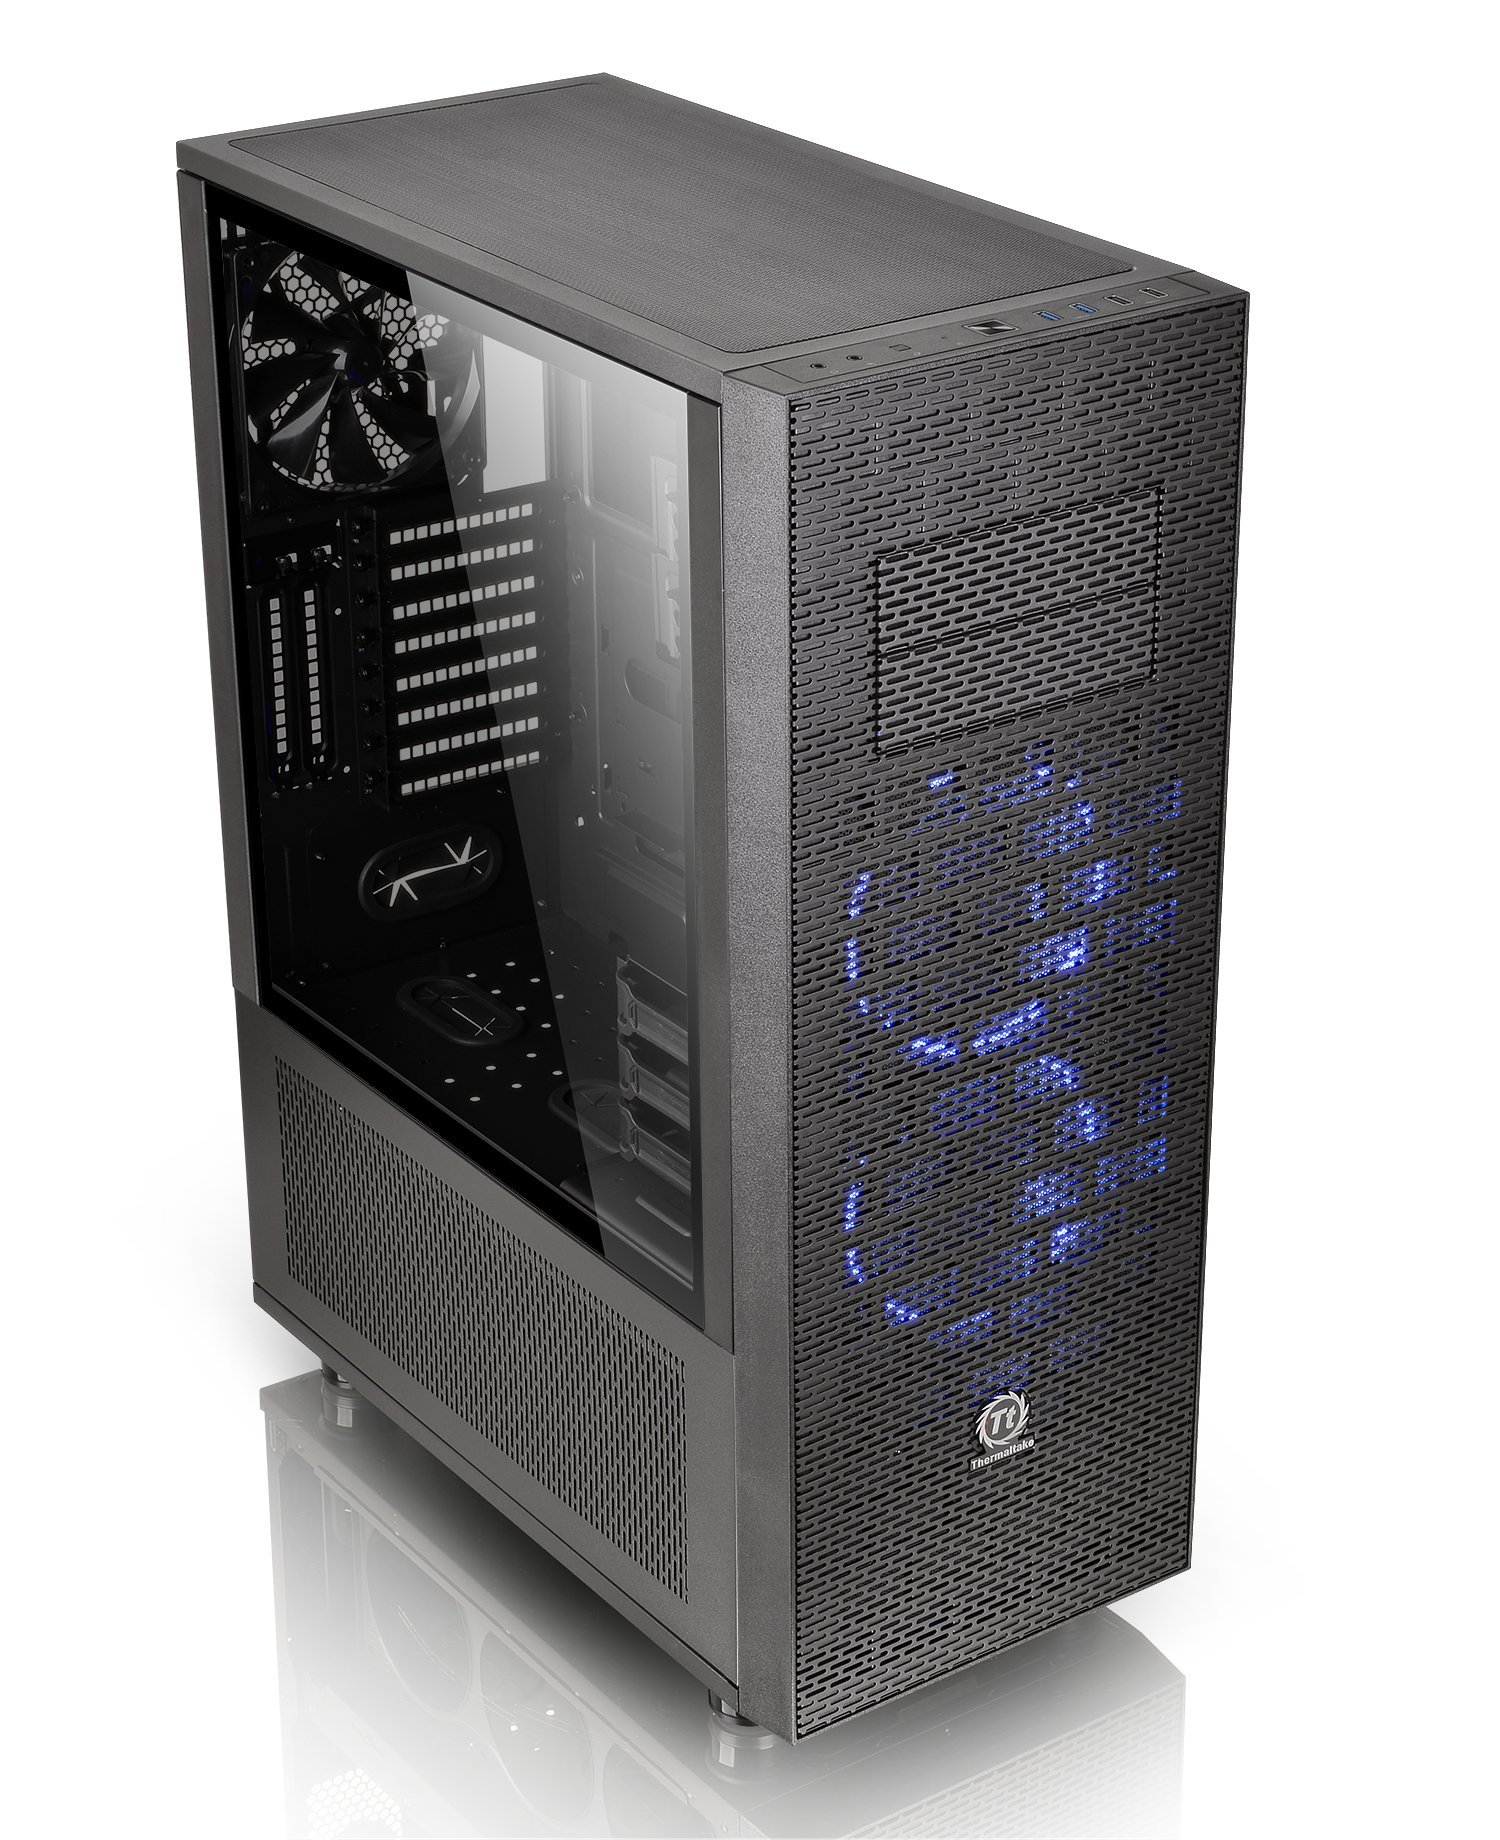 Thermaltake Core X71 Tempered Glass Edition SPCC ATX Full Tower Tt LCS Certified Gaming Computer Case CA-1F8-00M1WN-02